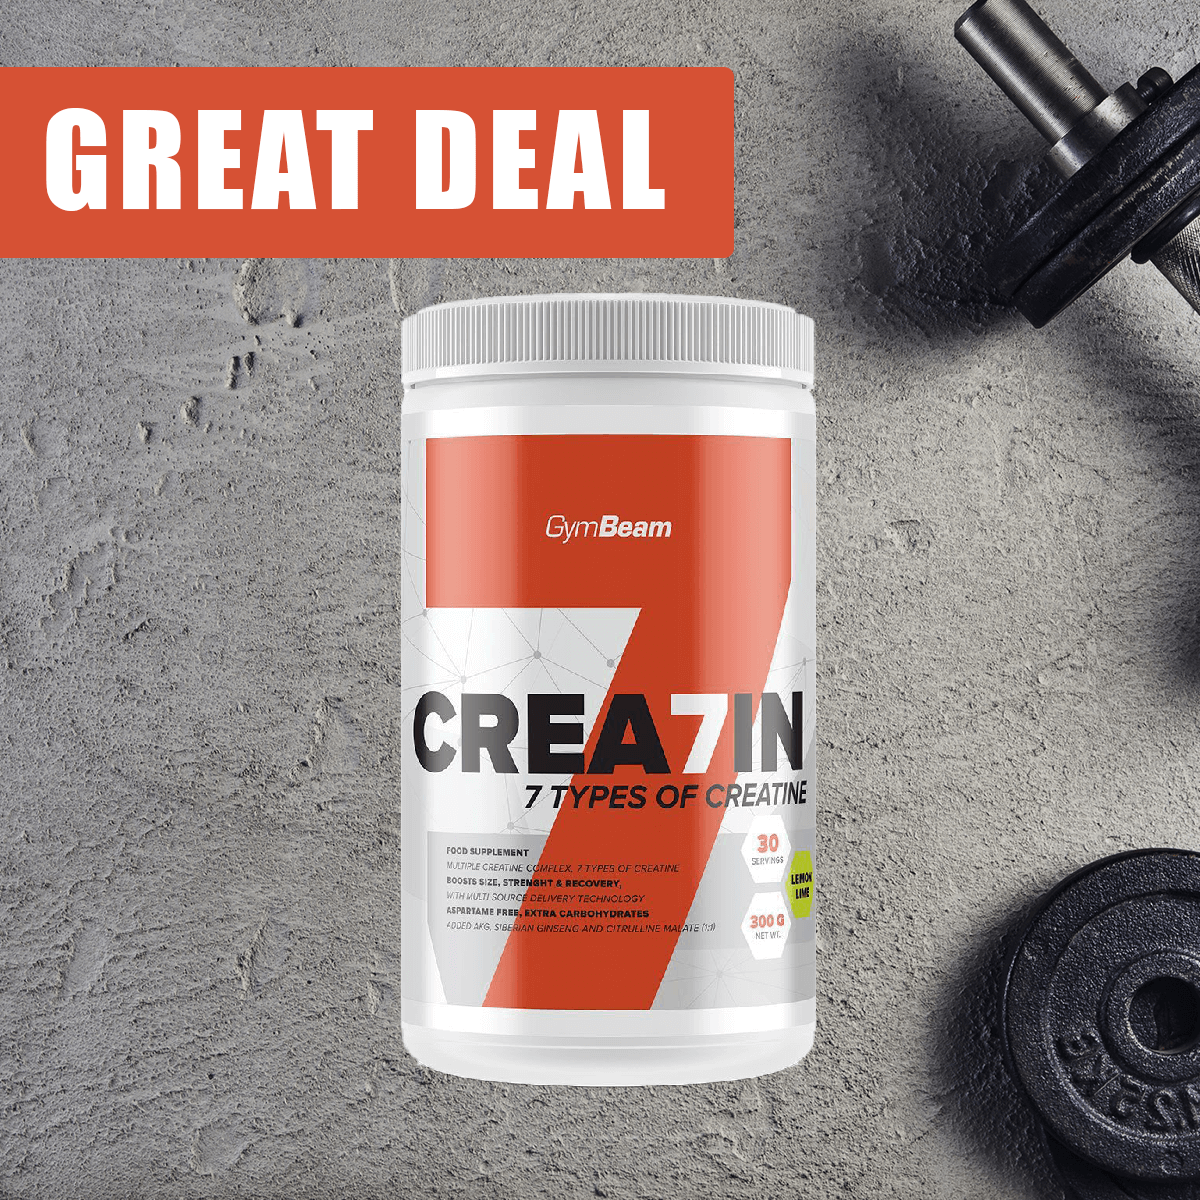 GymBeam Kreatín Crea7in 300 g - lemon lime